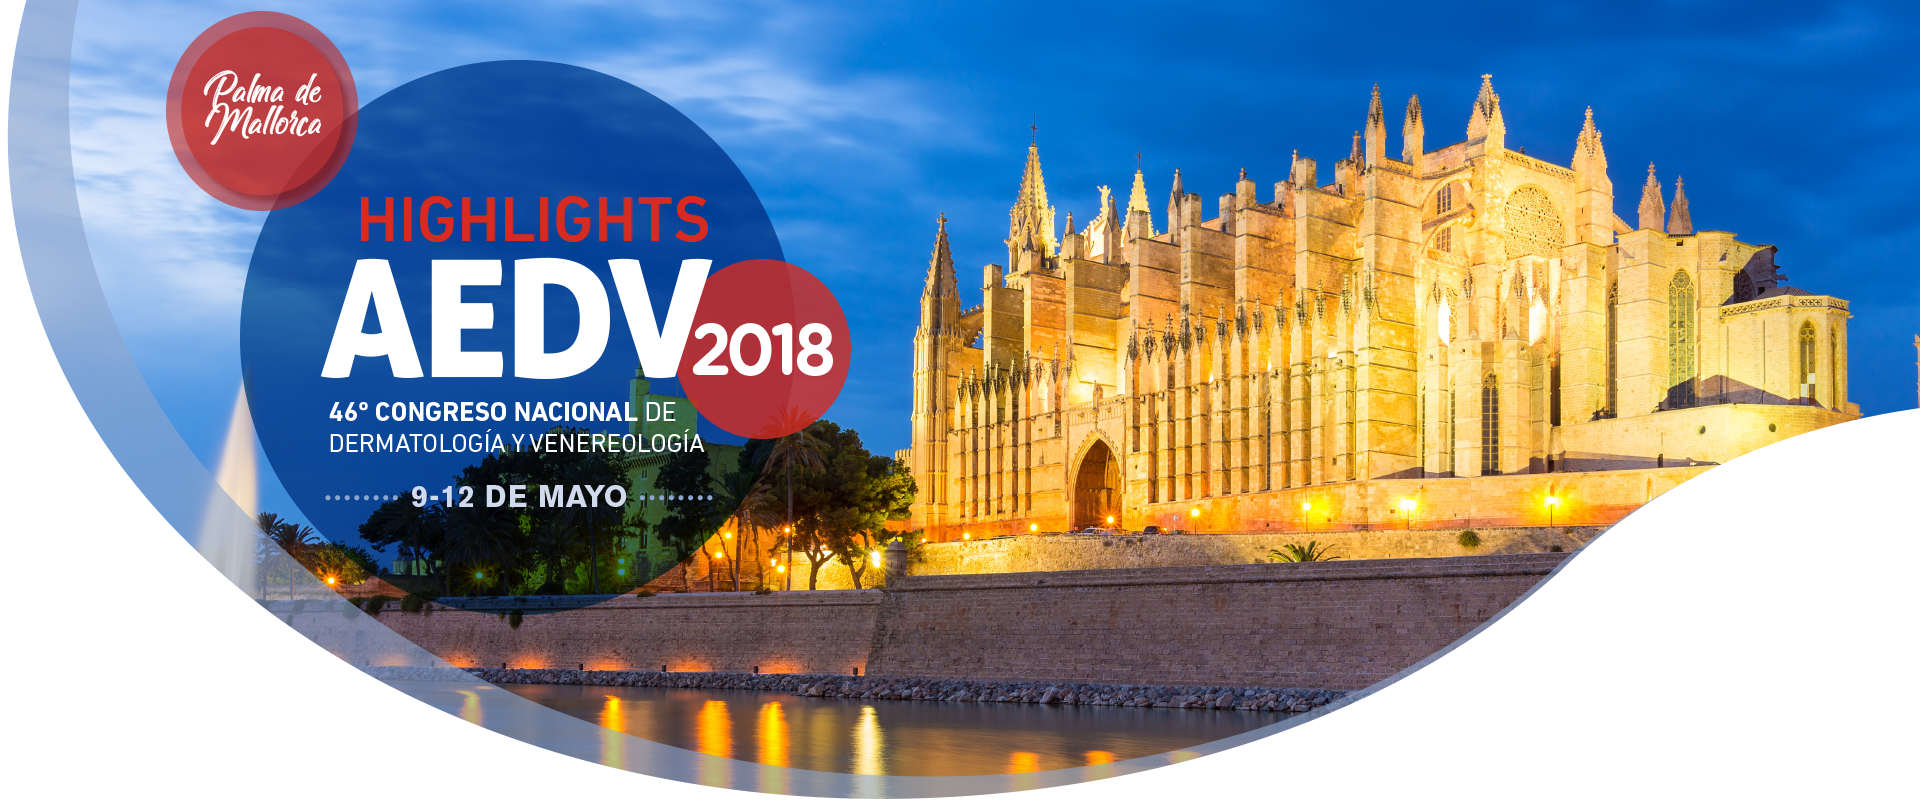 AEDV Highlights AEDV 2018